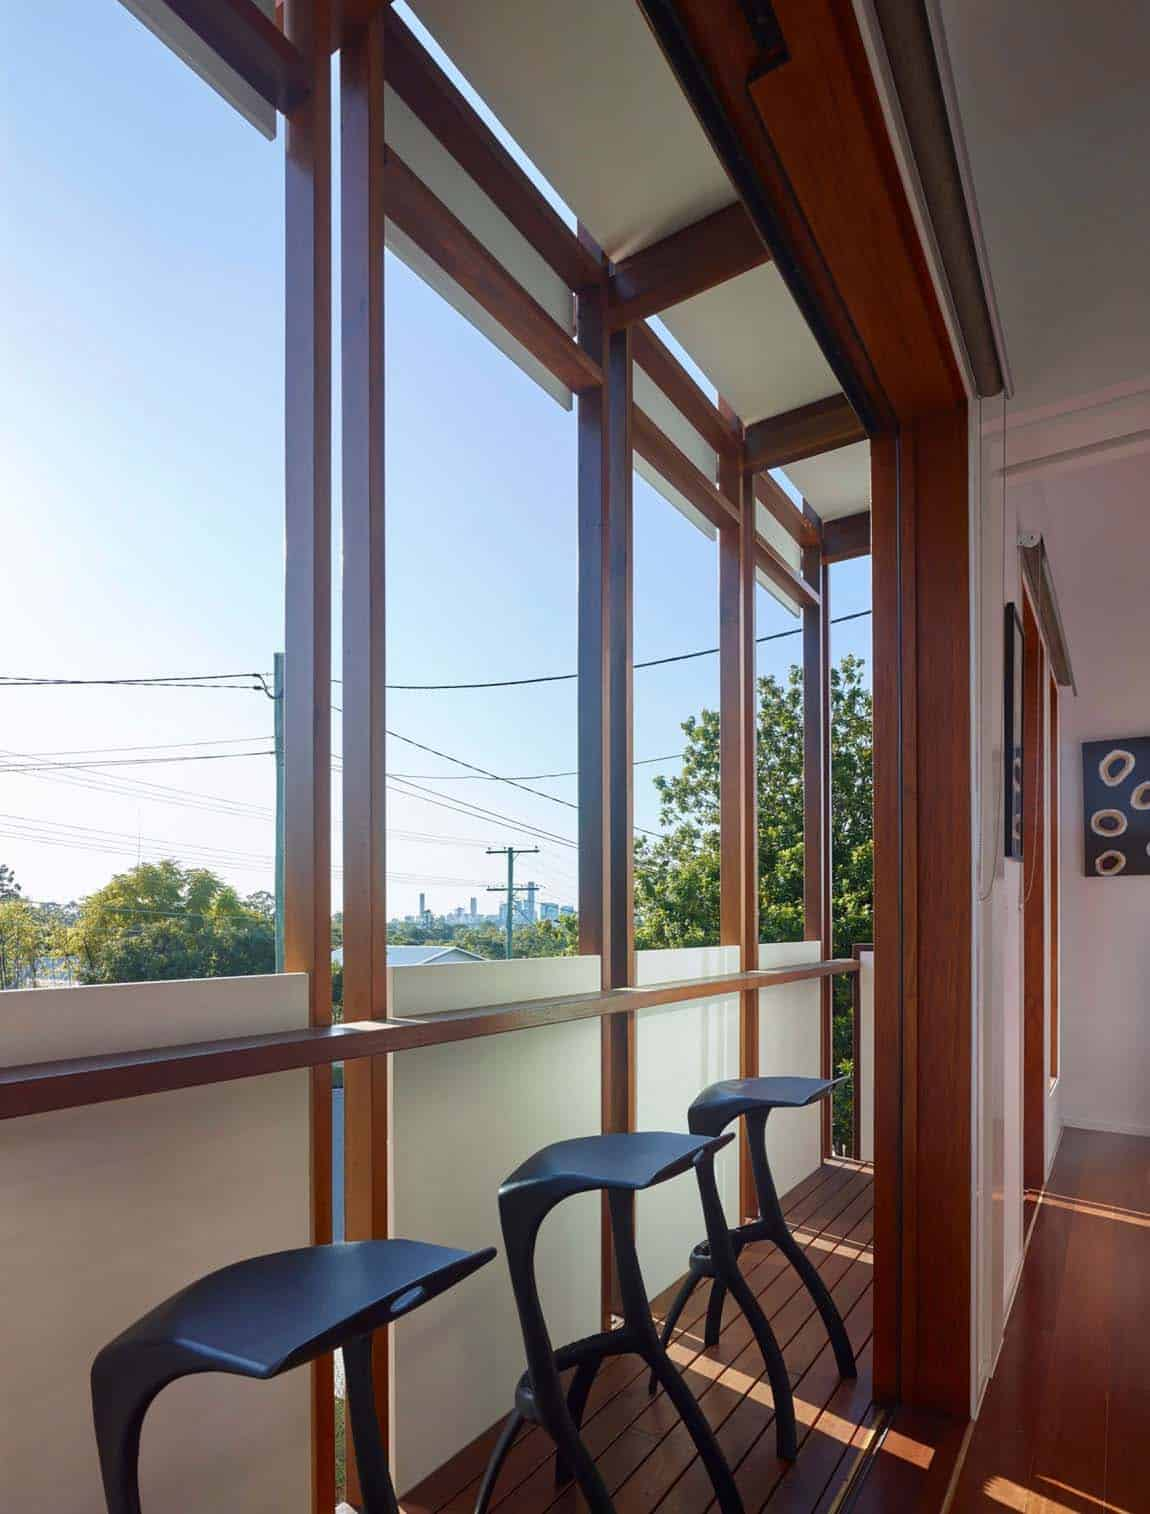 Architecture-Contemporary-Home-ONeill Architecture-13-1 Kindesign